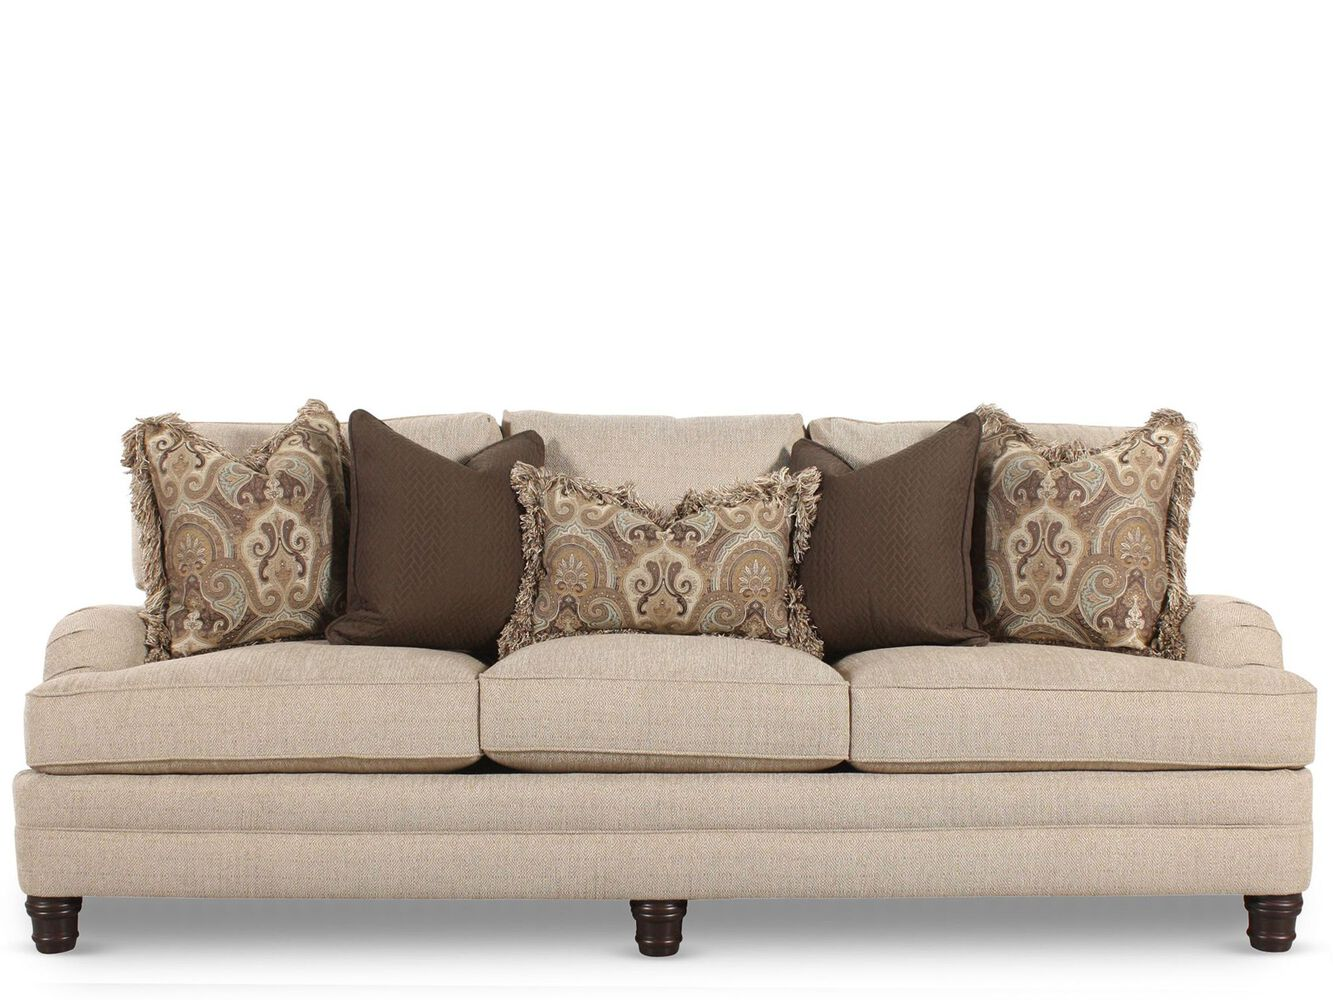 European classic 96 english arm sofa in sand mathis brothers furniture for Mathis brothers living room furniture